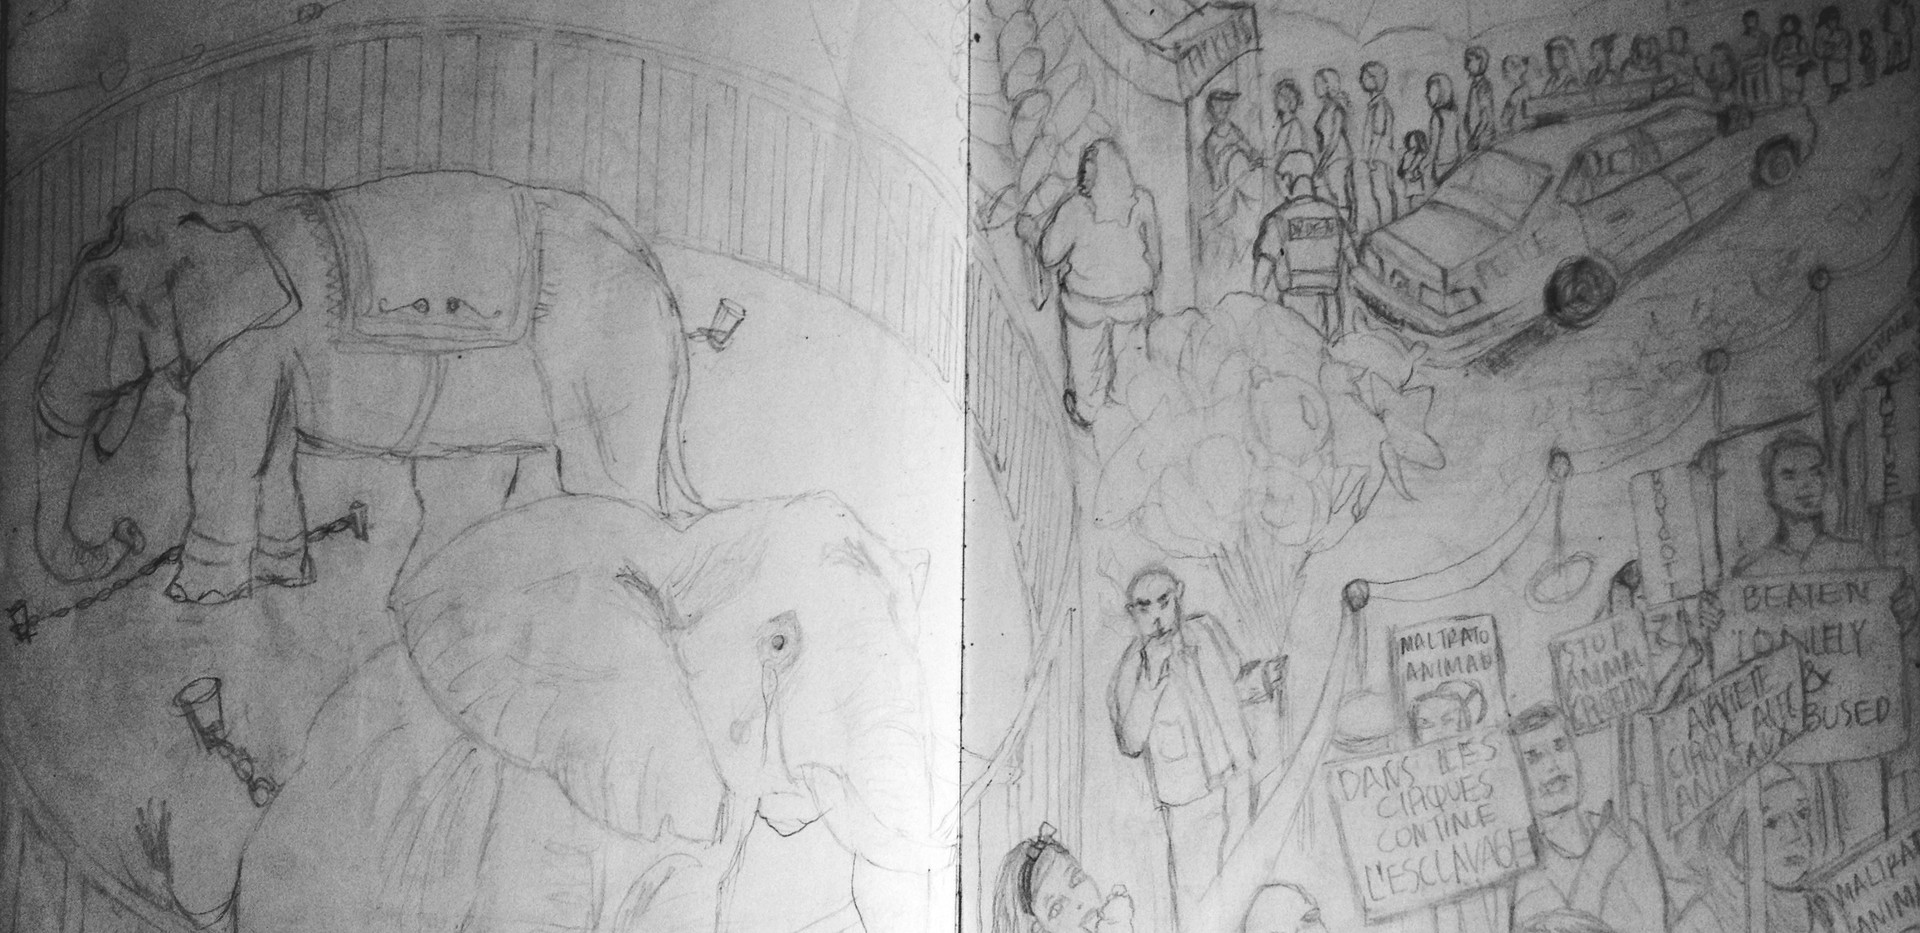 Sketch Protest Circus.jpg